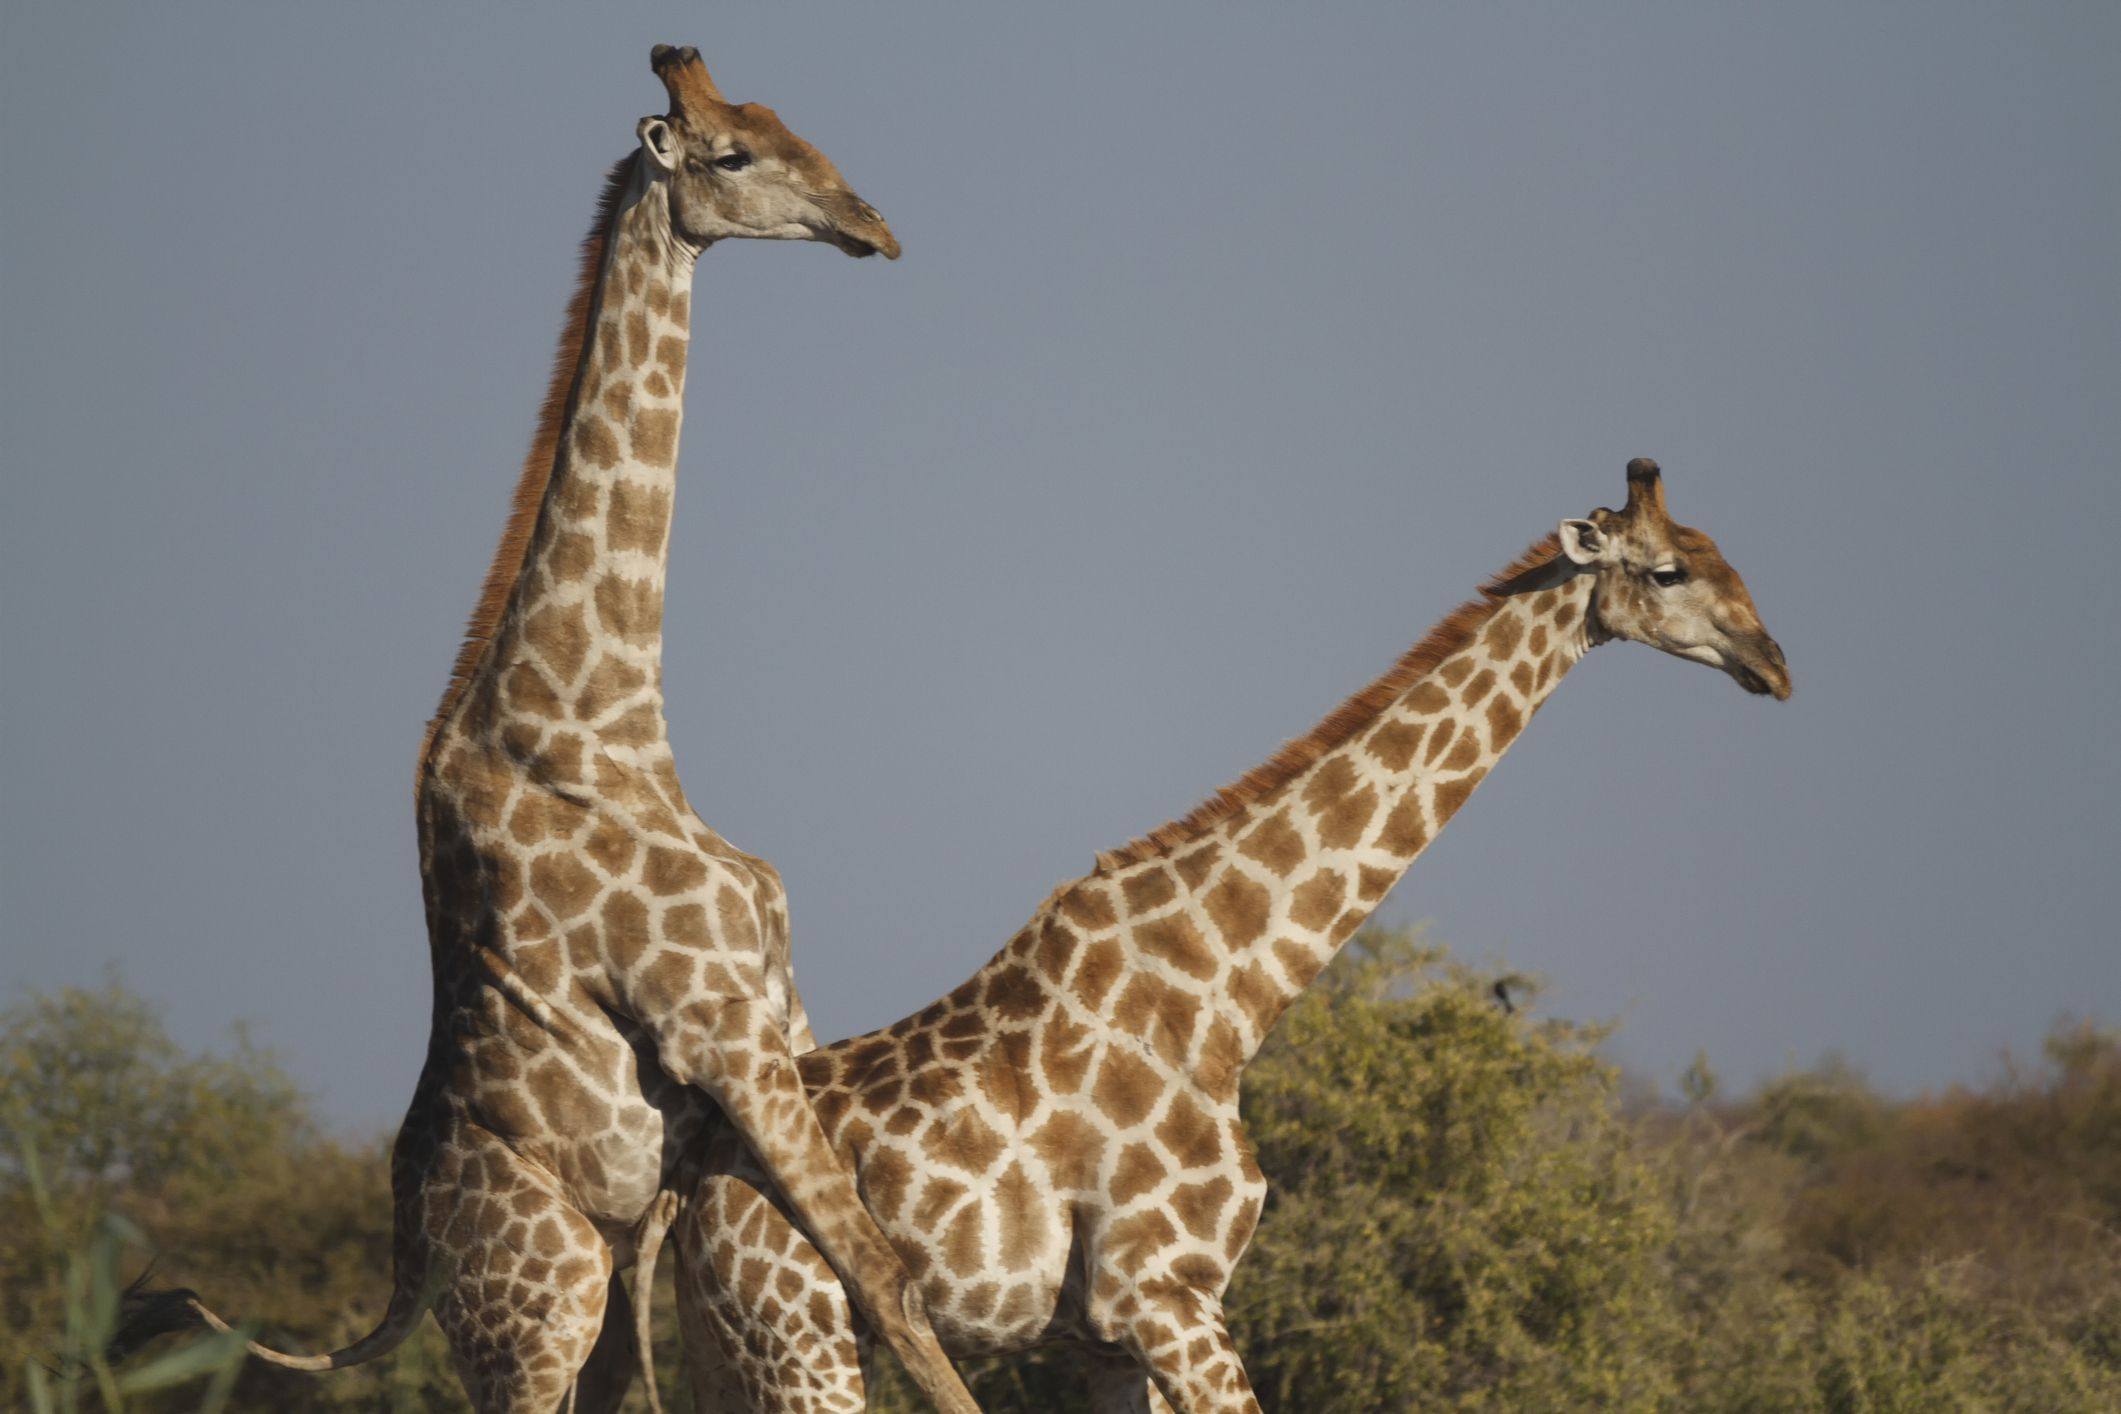 10 fun facts about giraffes